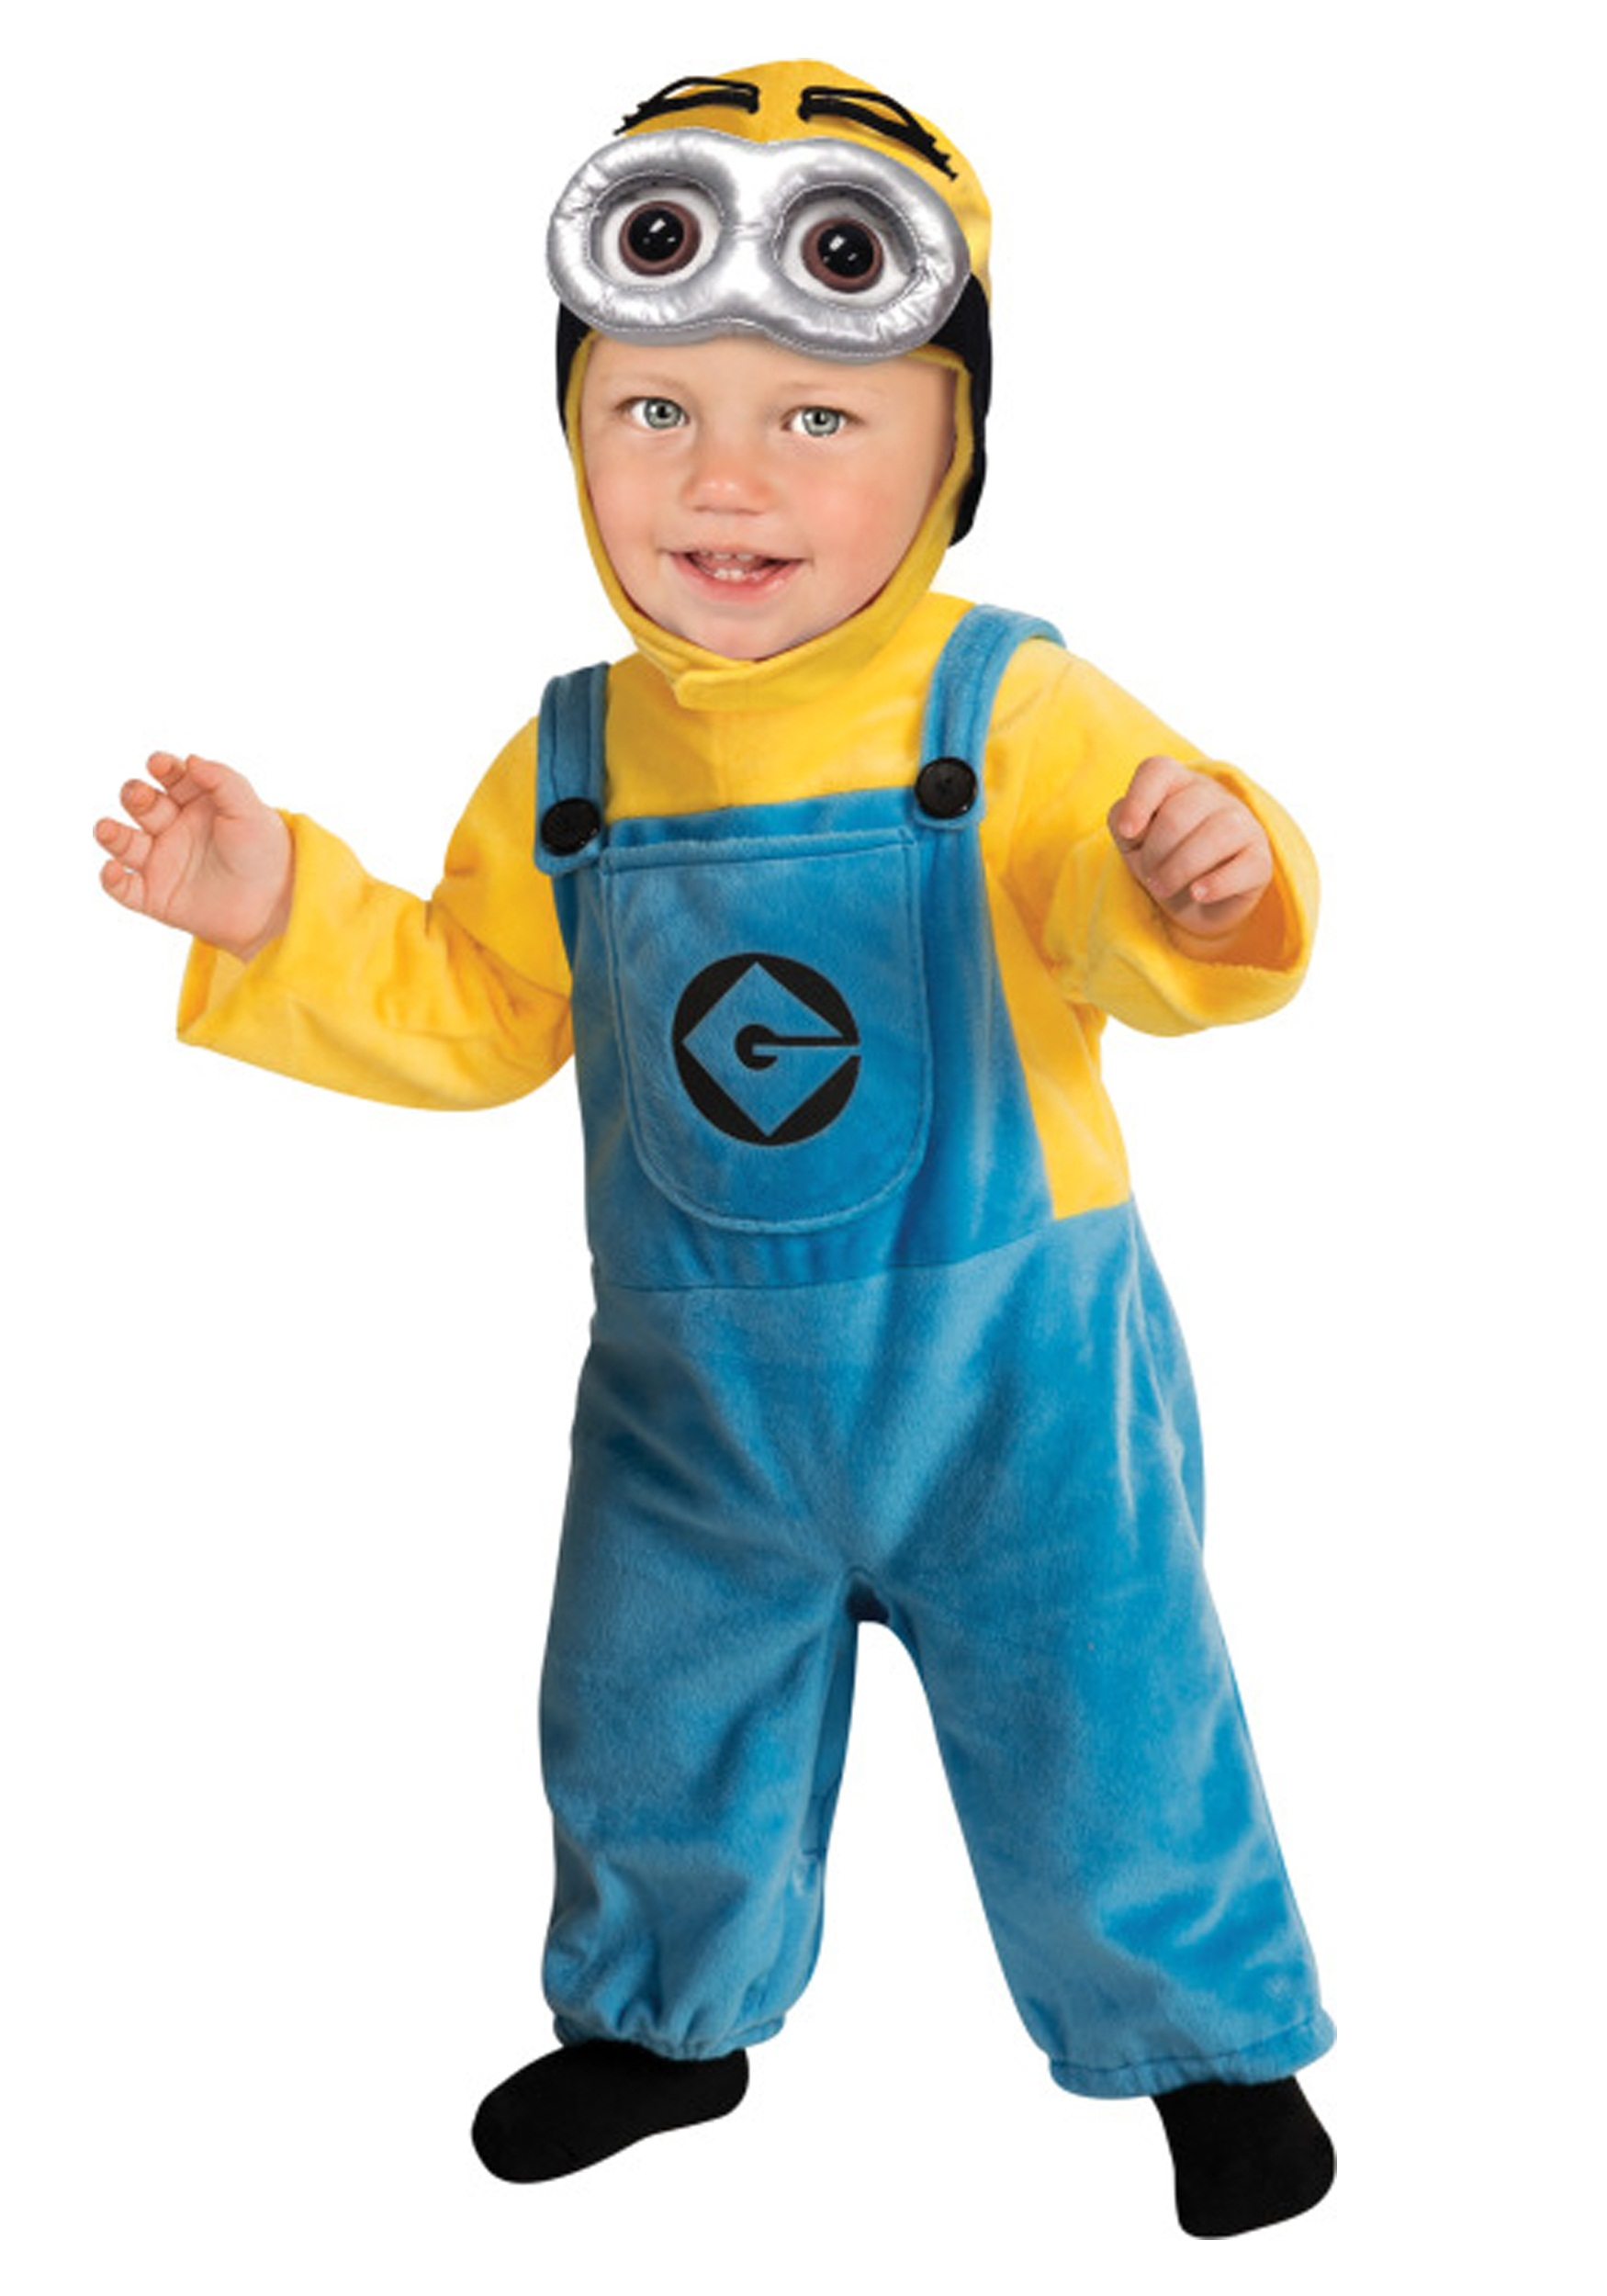 Find adult and kids Minion costumes for Kevin, Stuart and Bob to buy for Halloween through Funtober. Low prices, fast shipping and great selection of men, women and children's Despicable Me costumes.